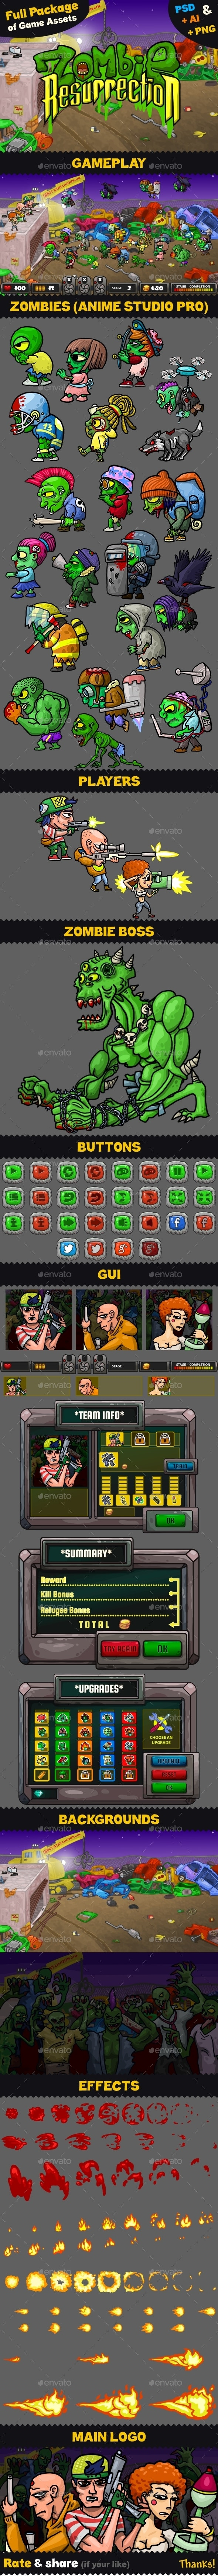 Game Assets for Zombie Resurrection - Game Kits Game Assets